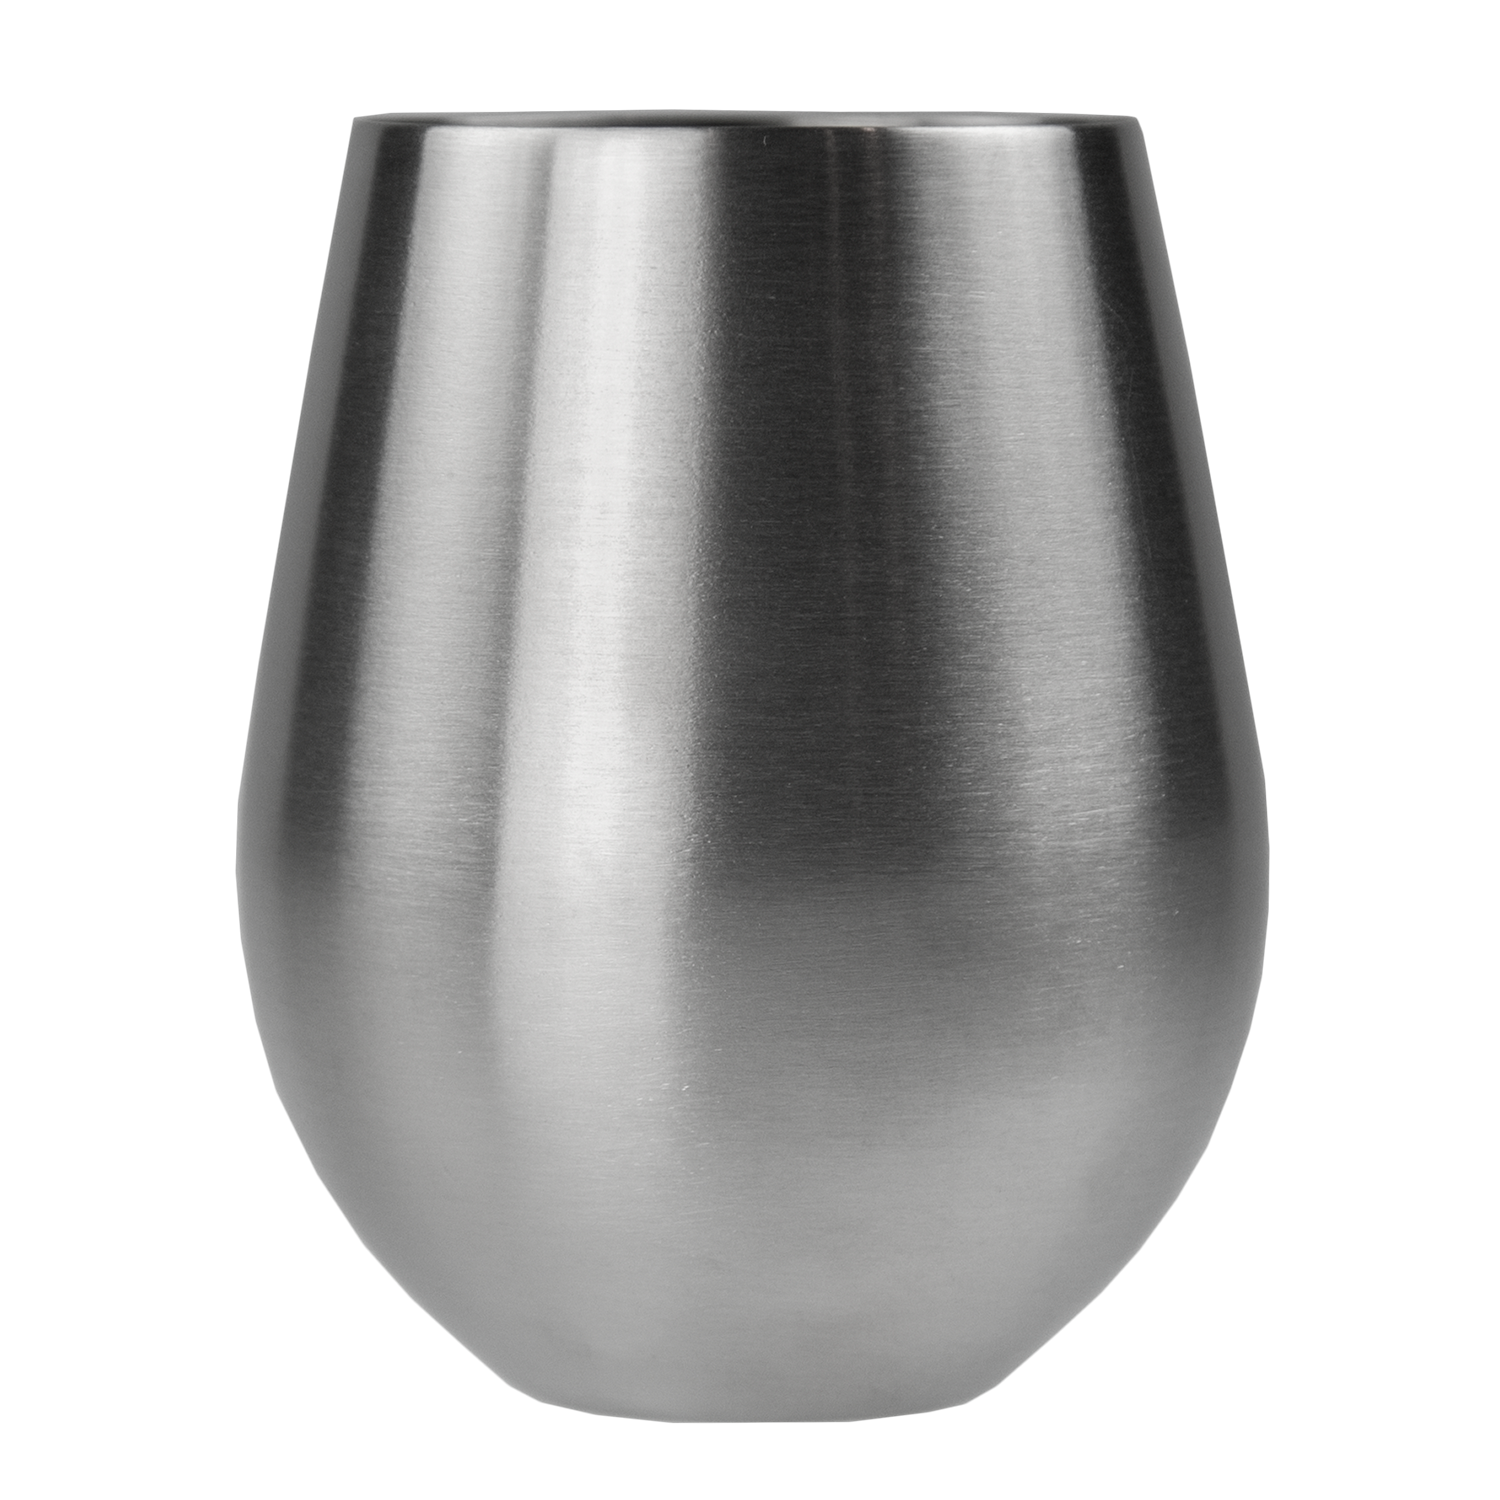 vino stainless steel stemless wine glass